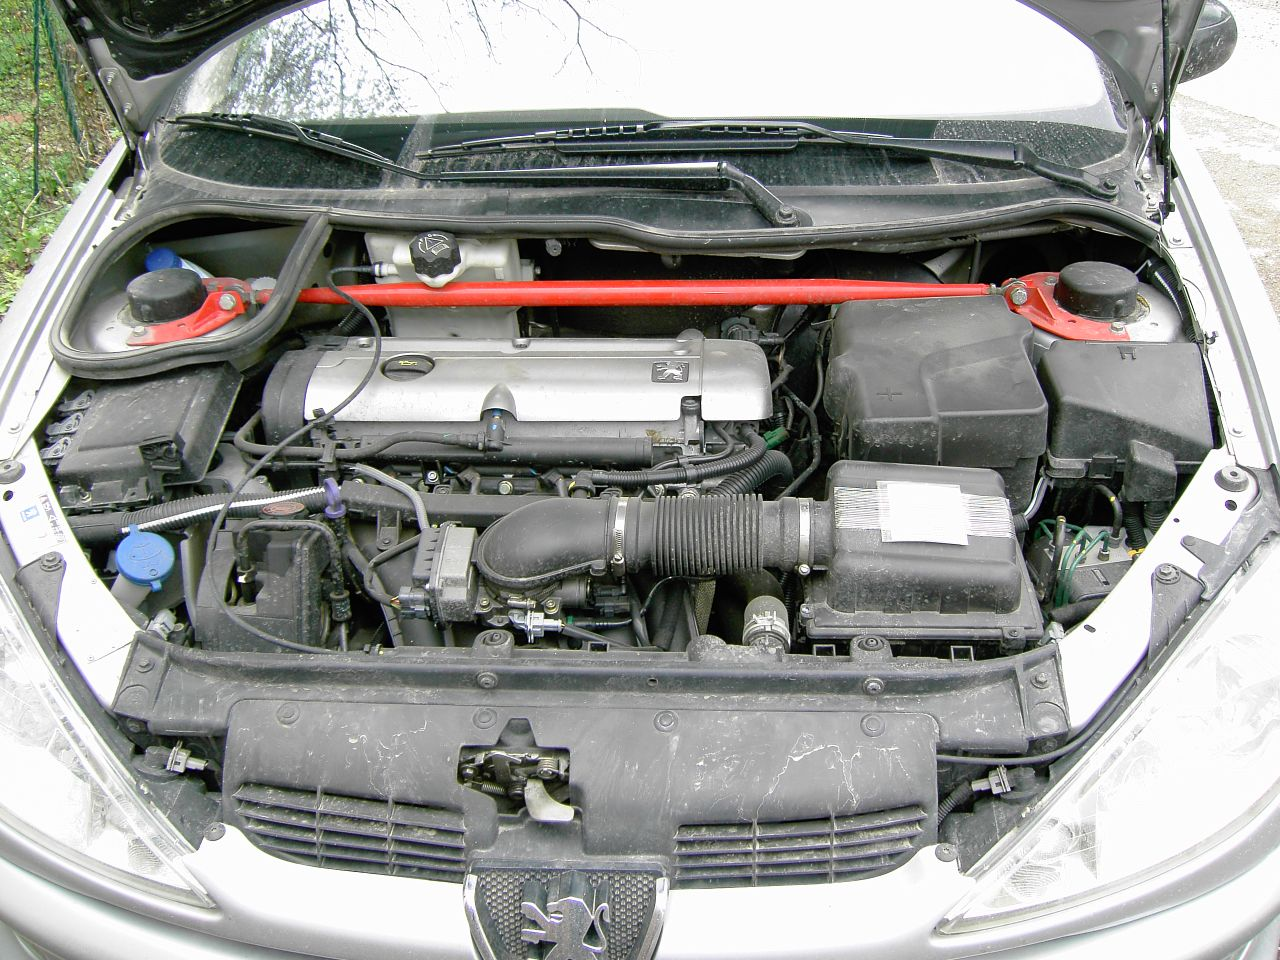 Peugeot 206 Gti engine bay with SPARCO and K&N filter ...